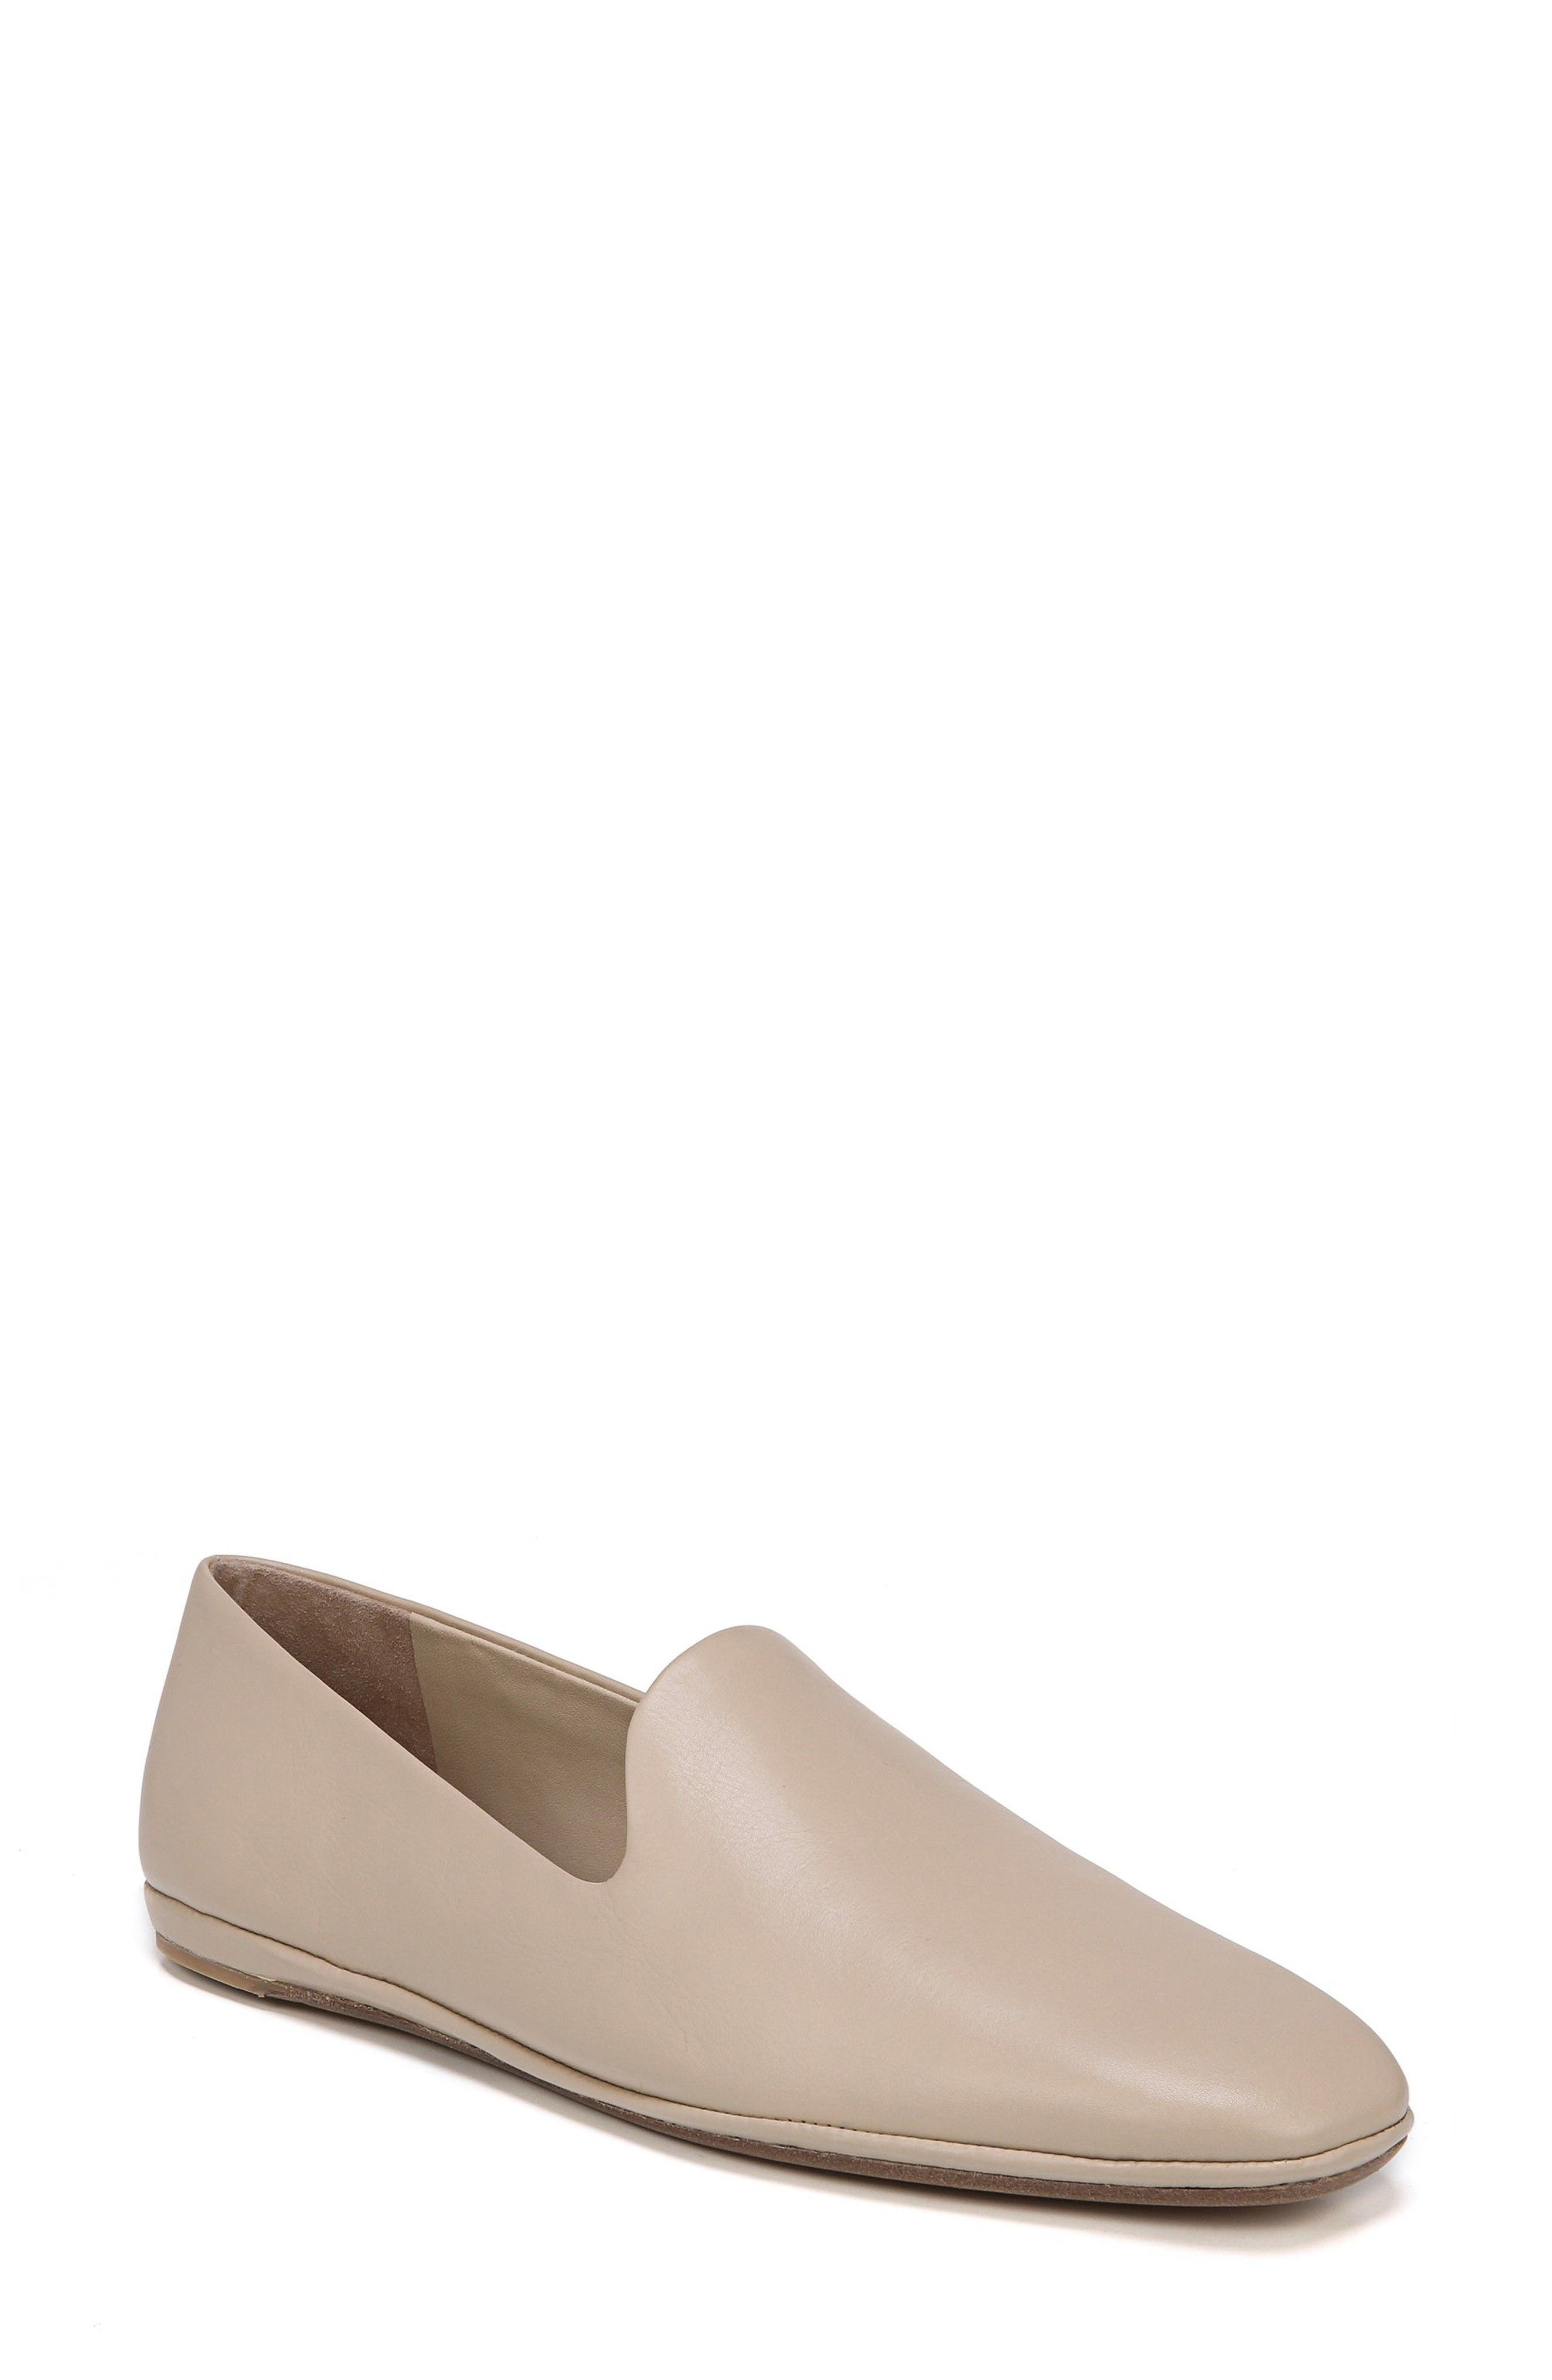 Paz Venetian Loafer,                             Main thumbnail 1, color,                             Greige Nude